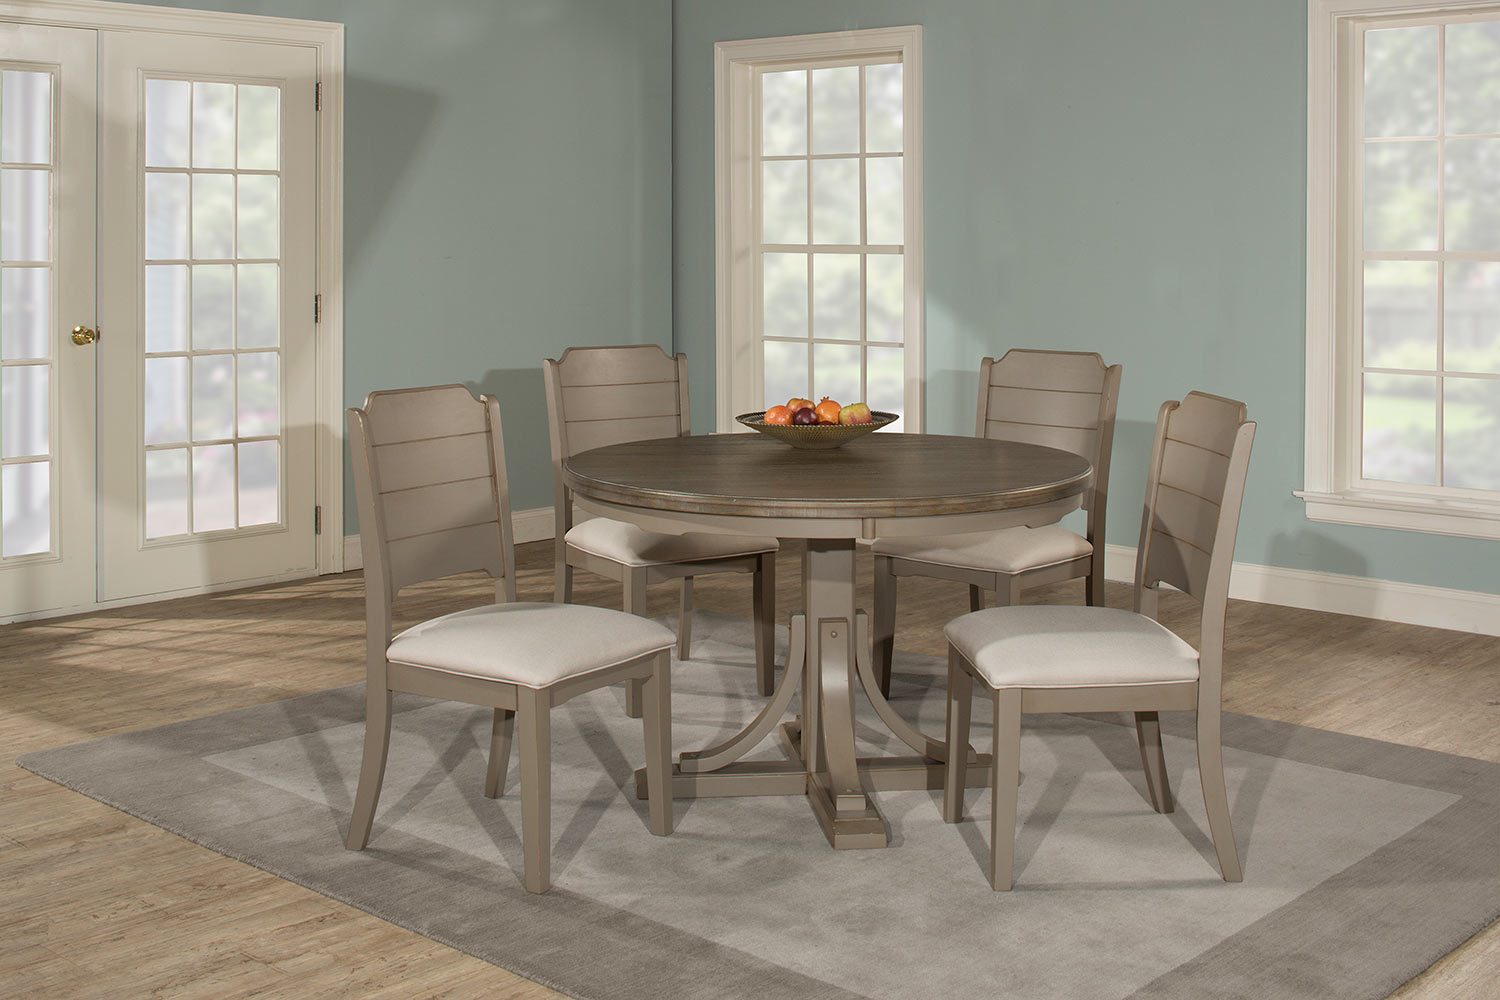 Hillsdale Clarion Round Dining Set - Gray